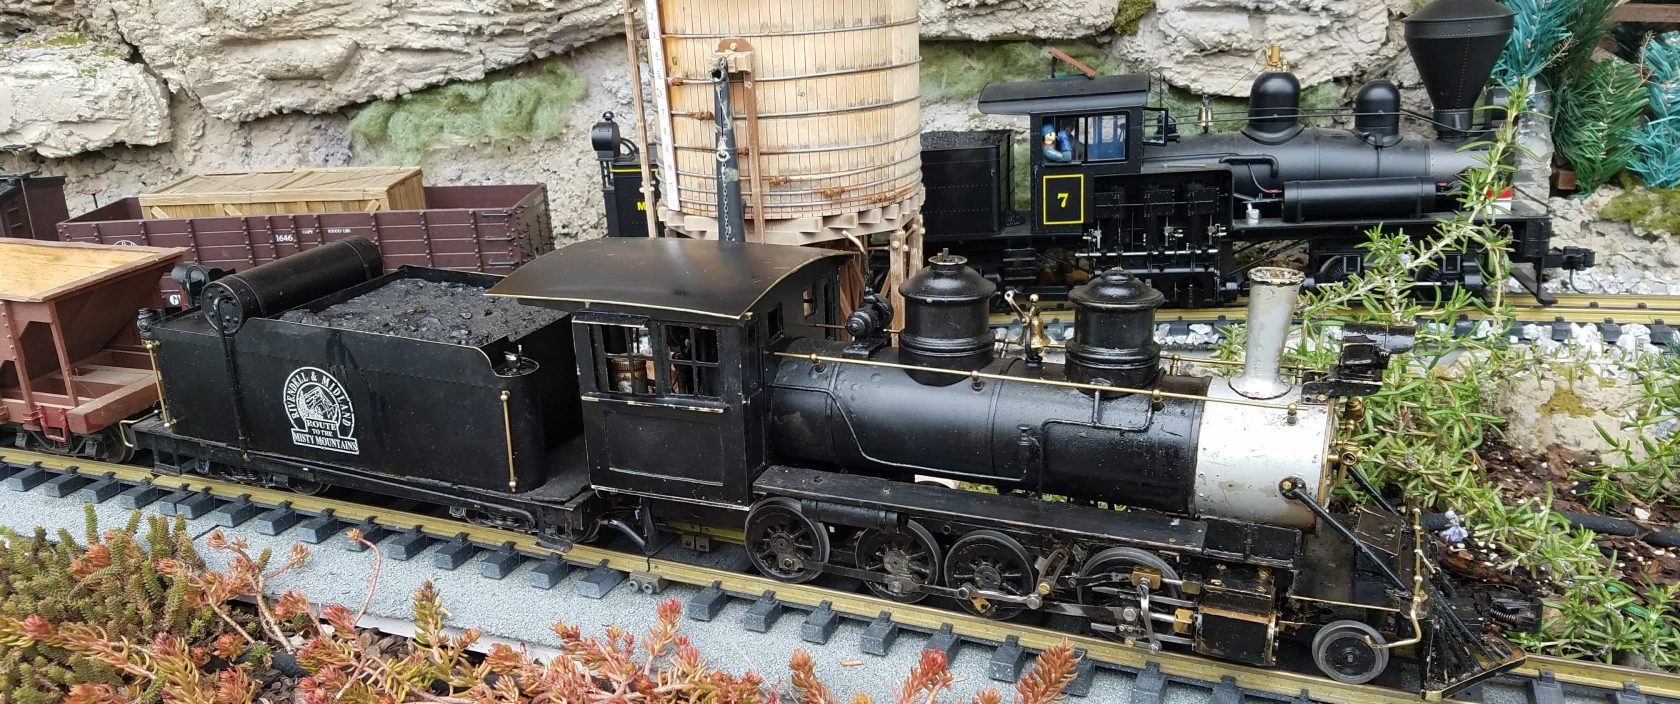 Piedmont Garden Railway Society Large Scale Modelers In The